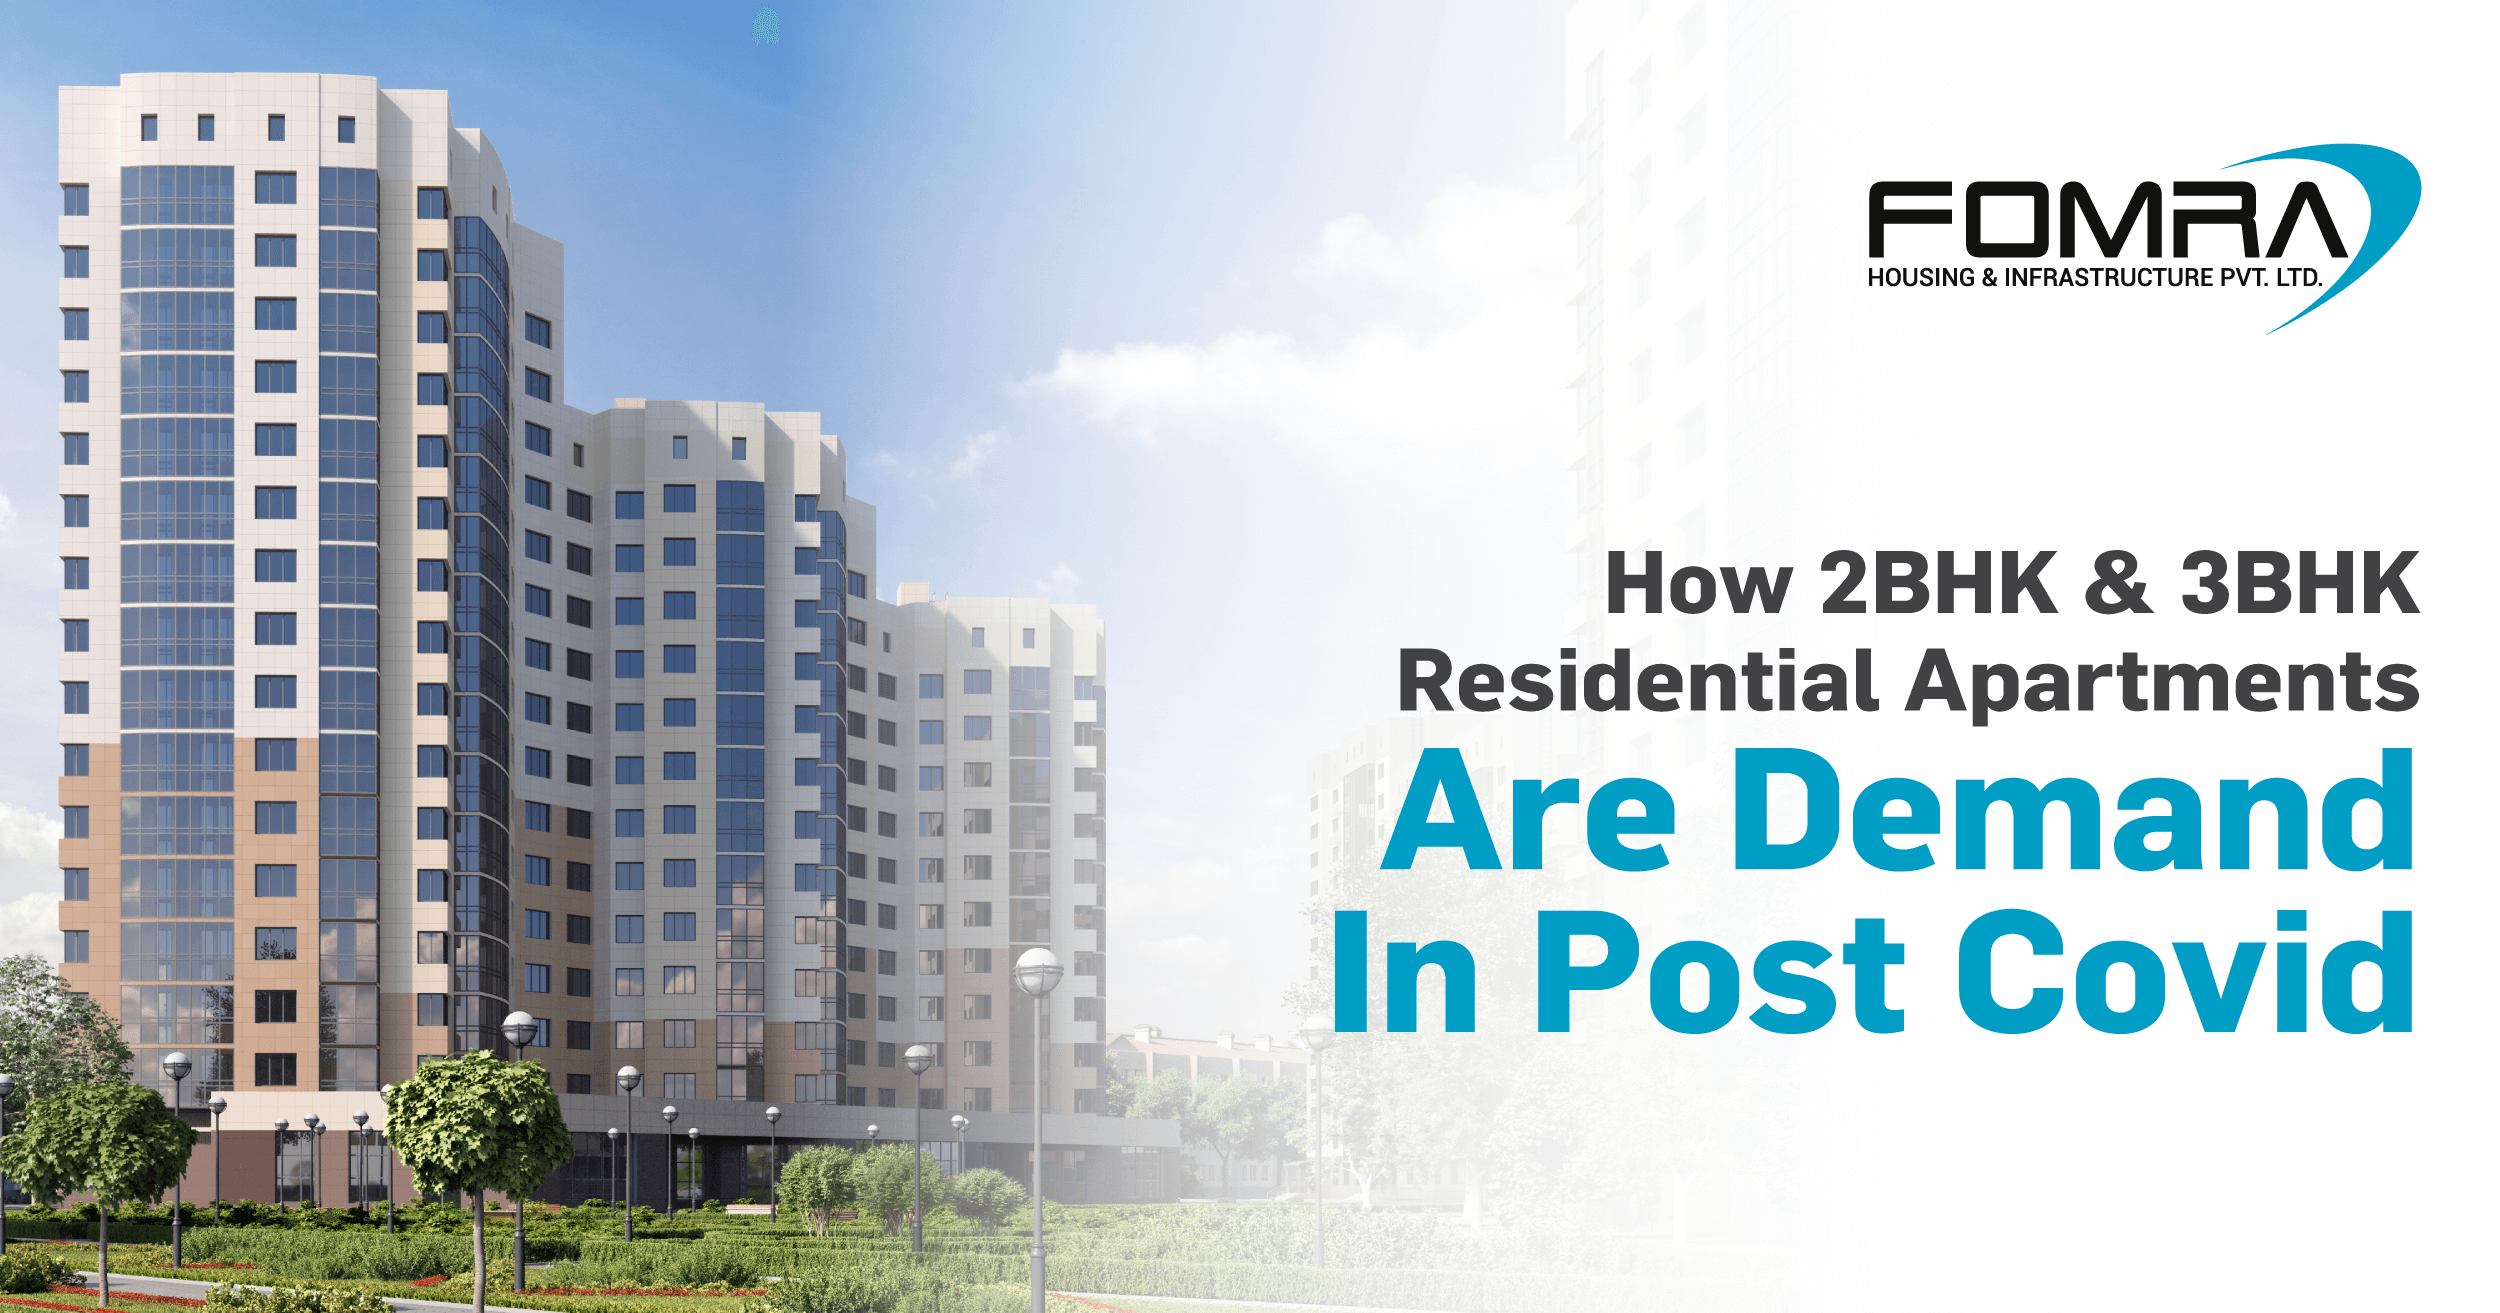 How-2BHK-and-3BHK-Residential-Apartments-are-Demand-in-Post-Covid